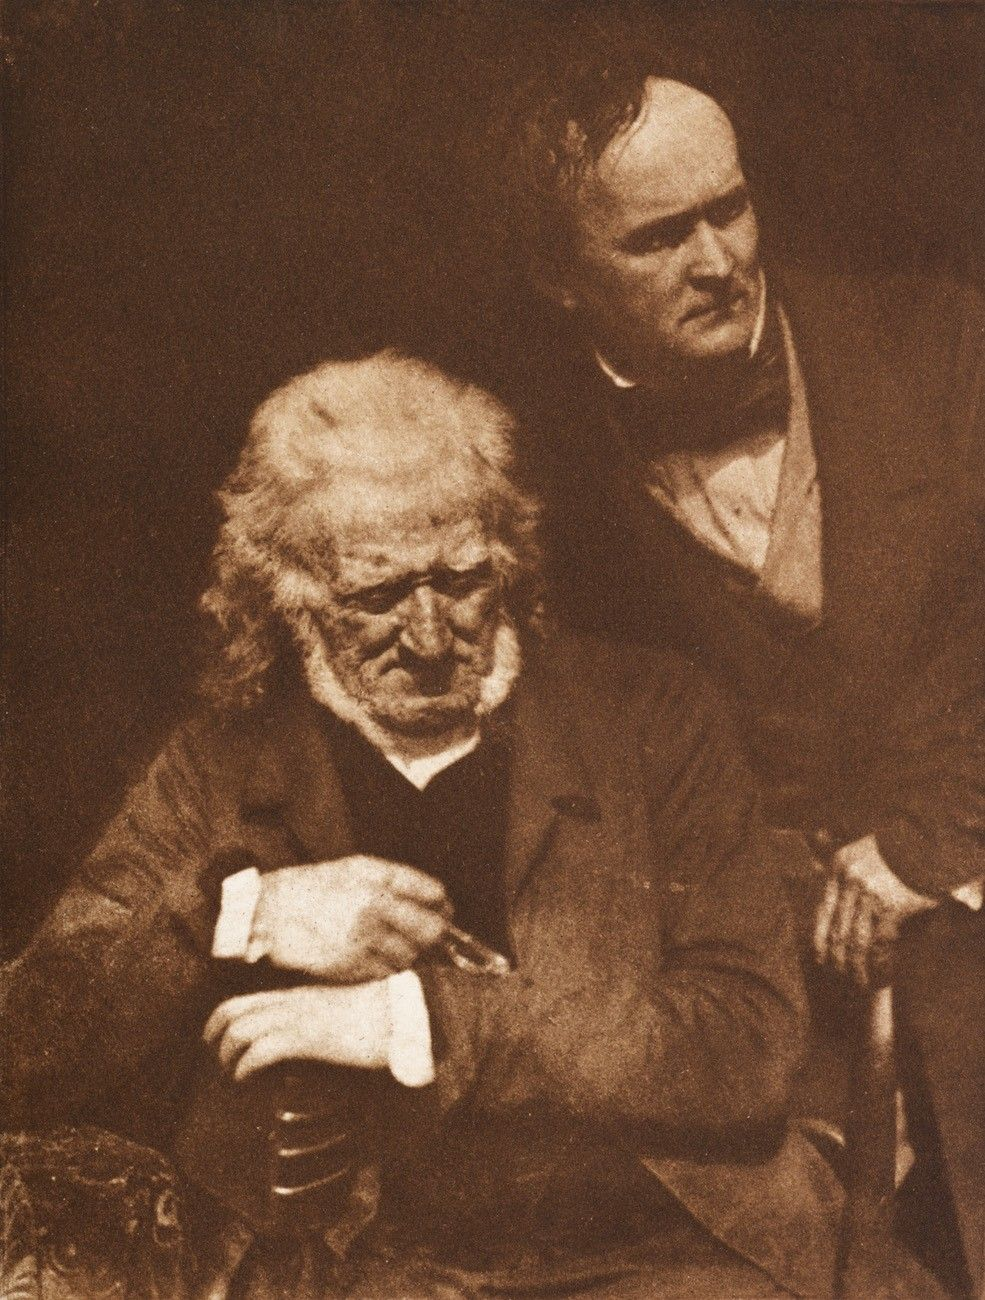 Handyside Ritchie and William Henning, photographed by David Octavius Hill & Robert Adamson